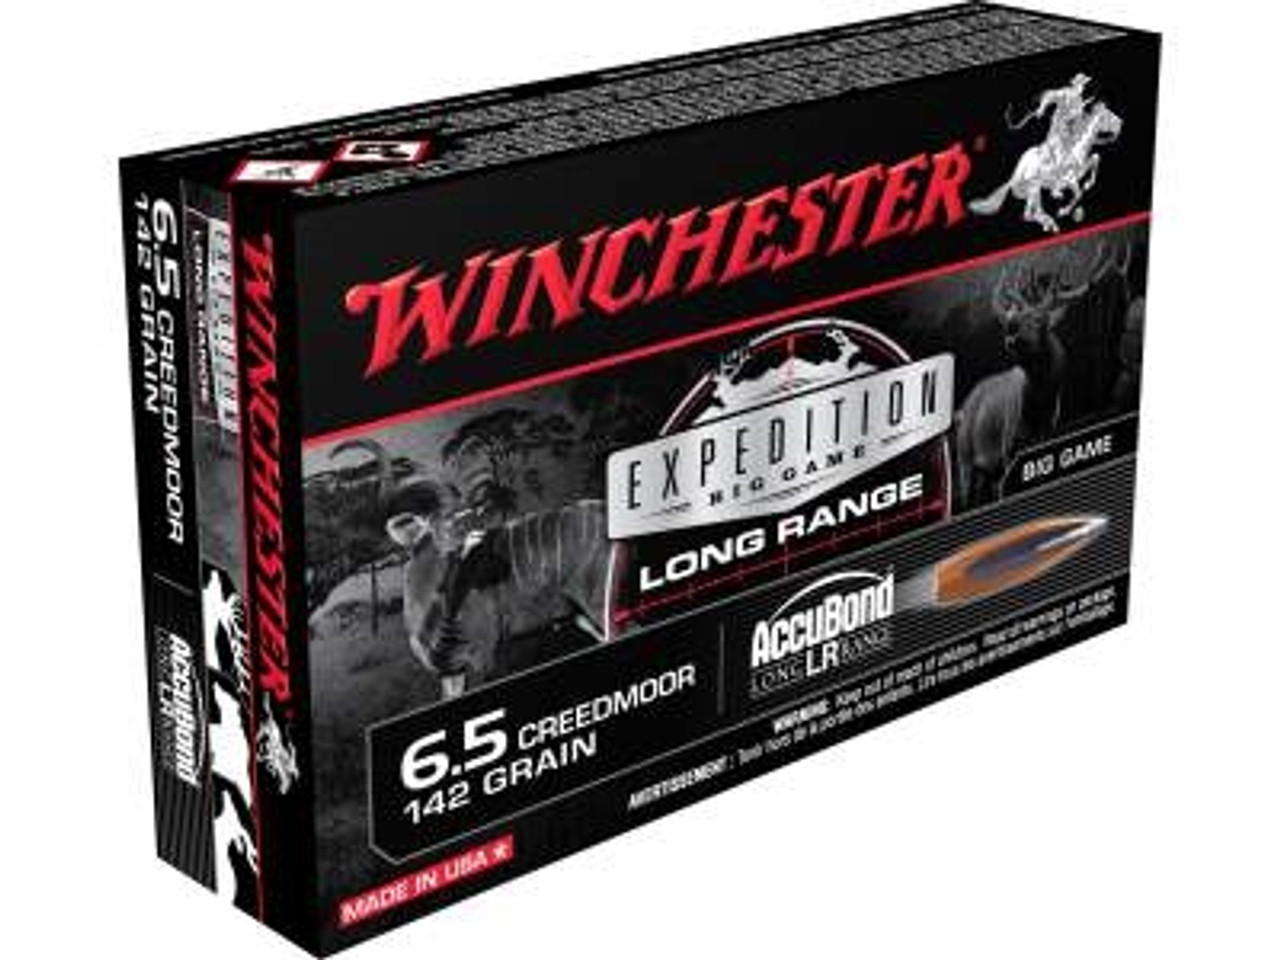 Winchester 6 5 Creedmoor Ammunition Expedition Long Range S65LR 142 Grain  Nosler Accubond LR 20 rounds